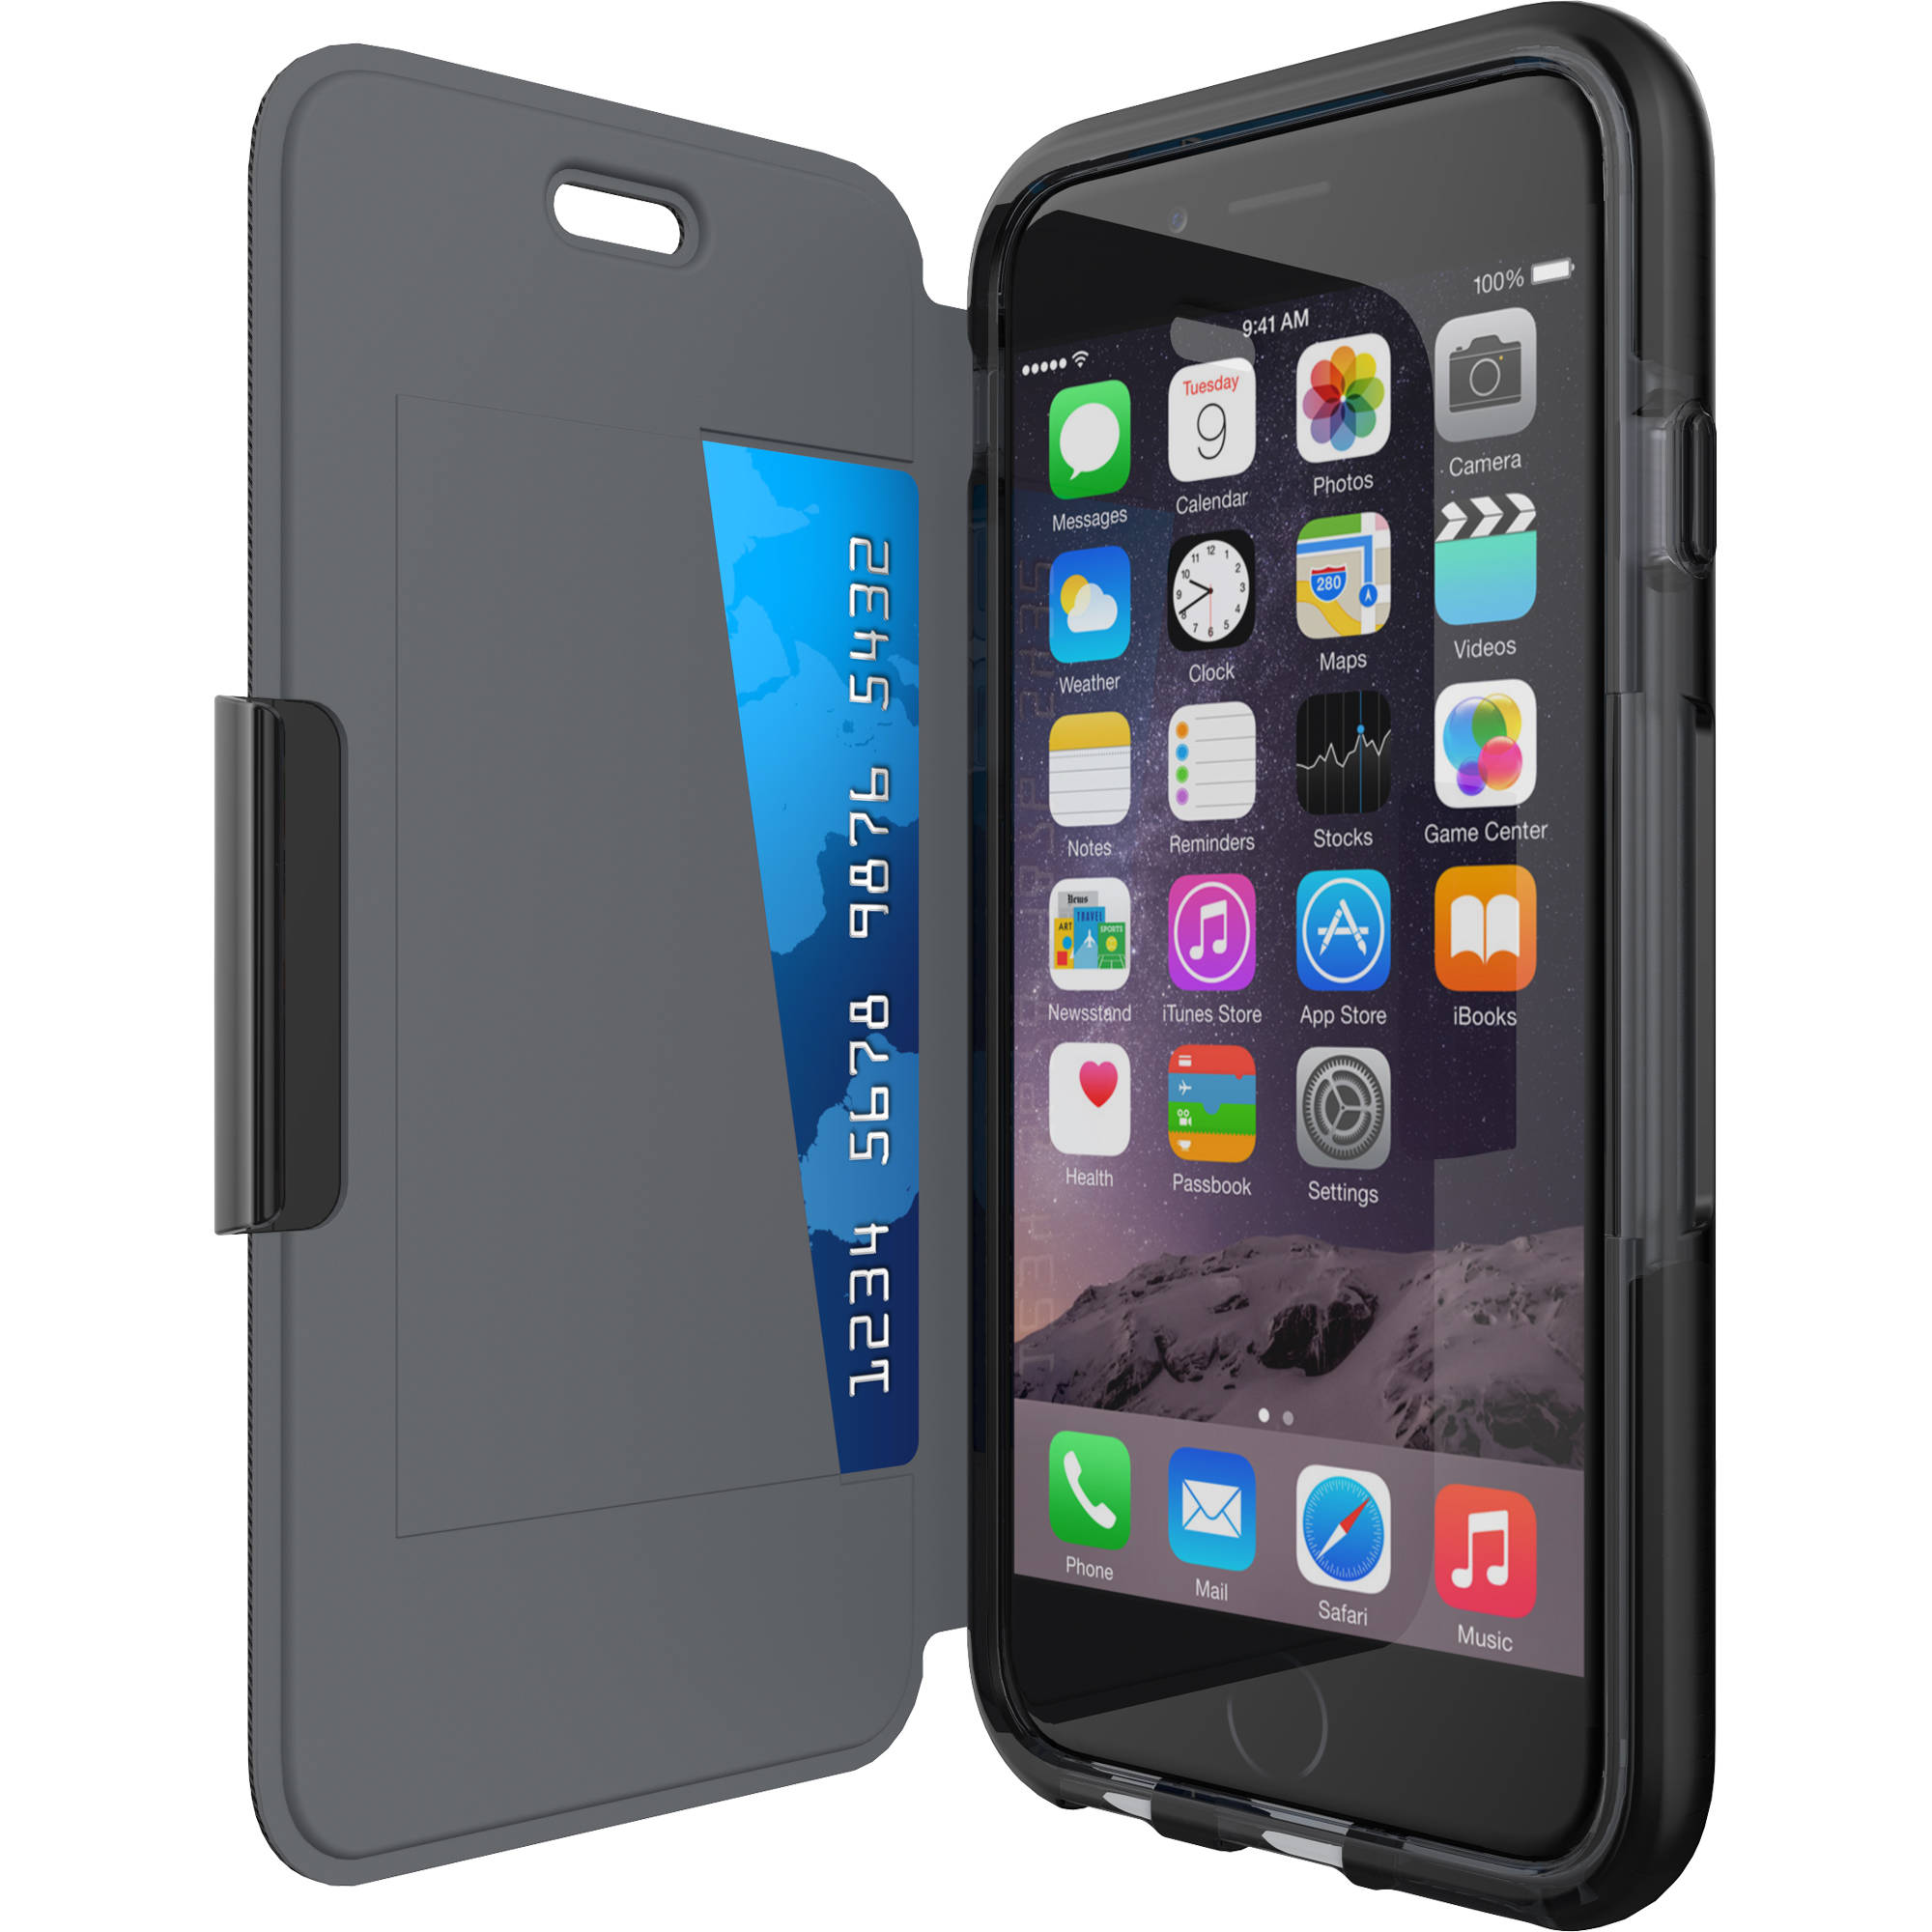 Tech21 Evo Wallet Case For Iphone 6 Black T21 5101 Bh Photo Navy Pro Tools 6g 6p Smartphone Not Included